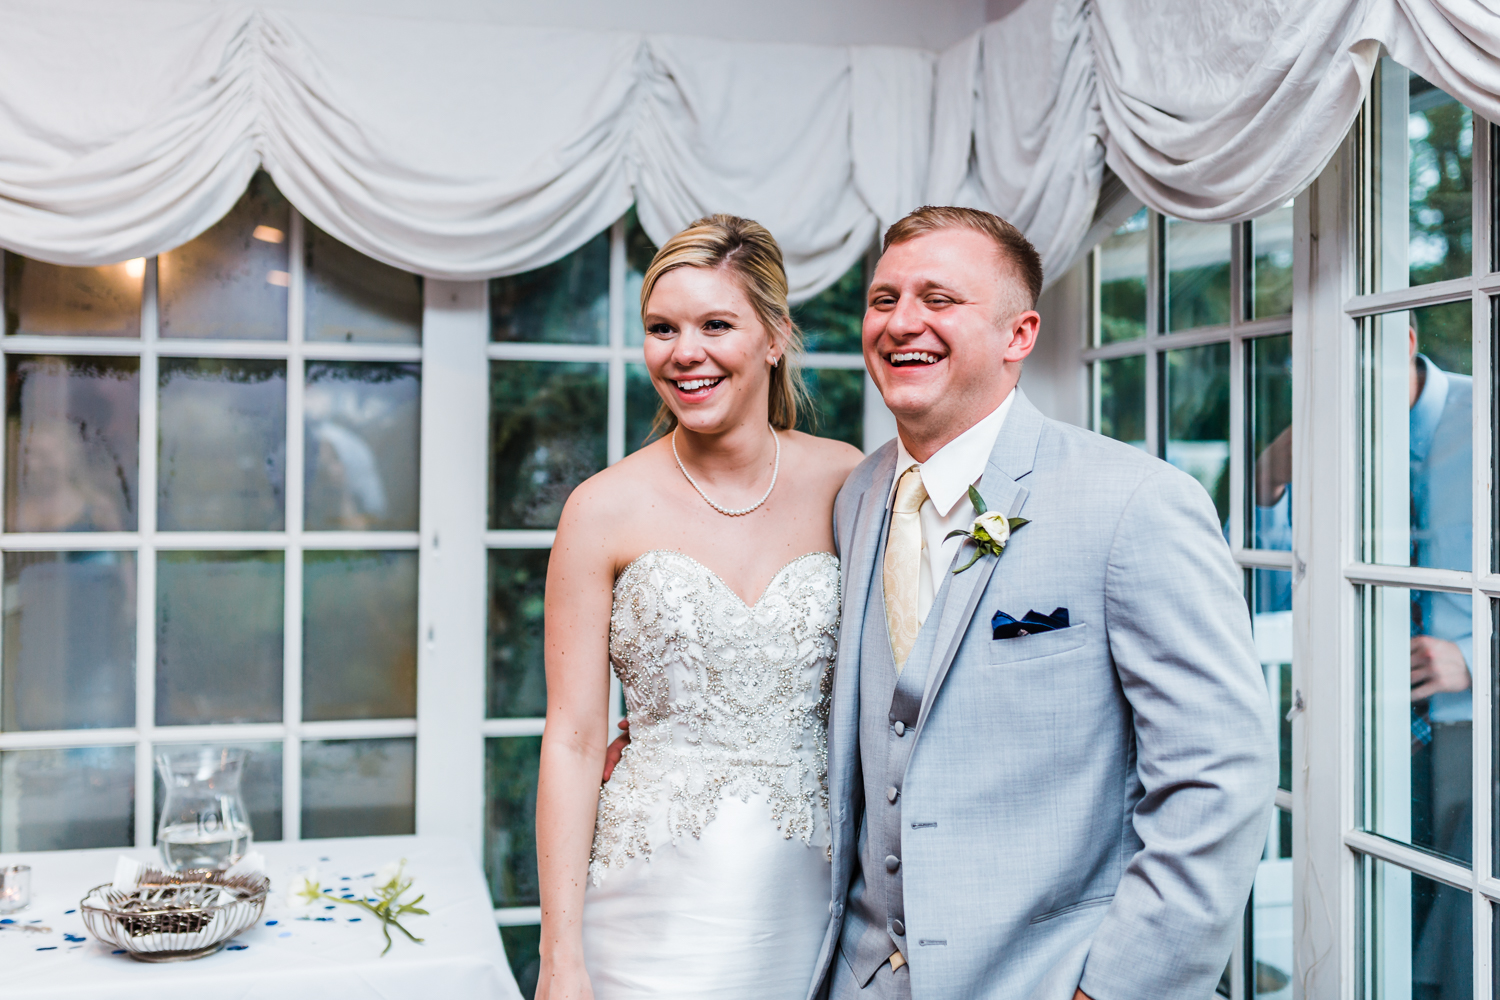 bride and groom laughing while their guests dance - best wedding photography in carroll county maryland